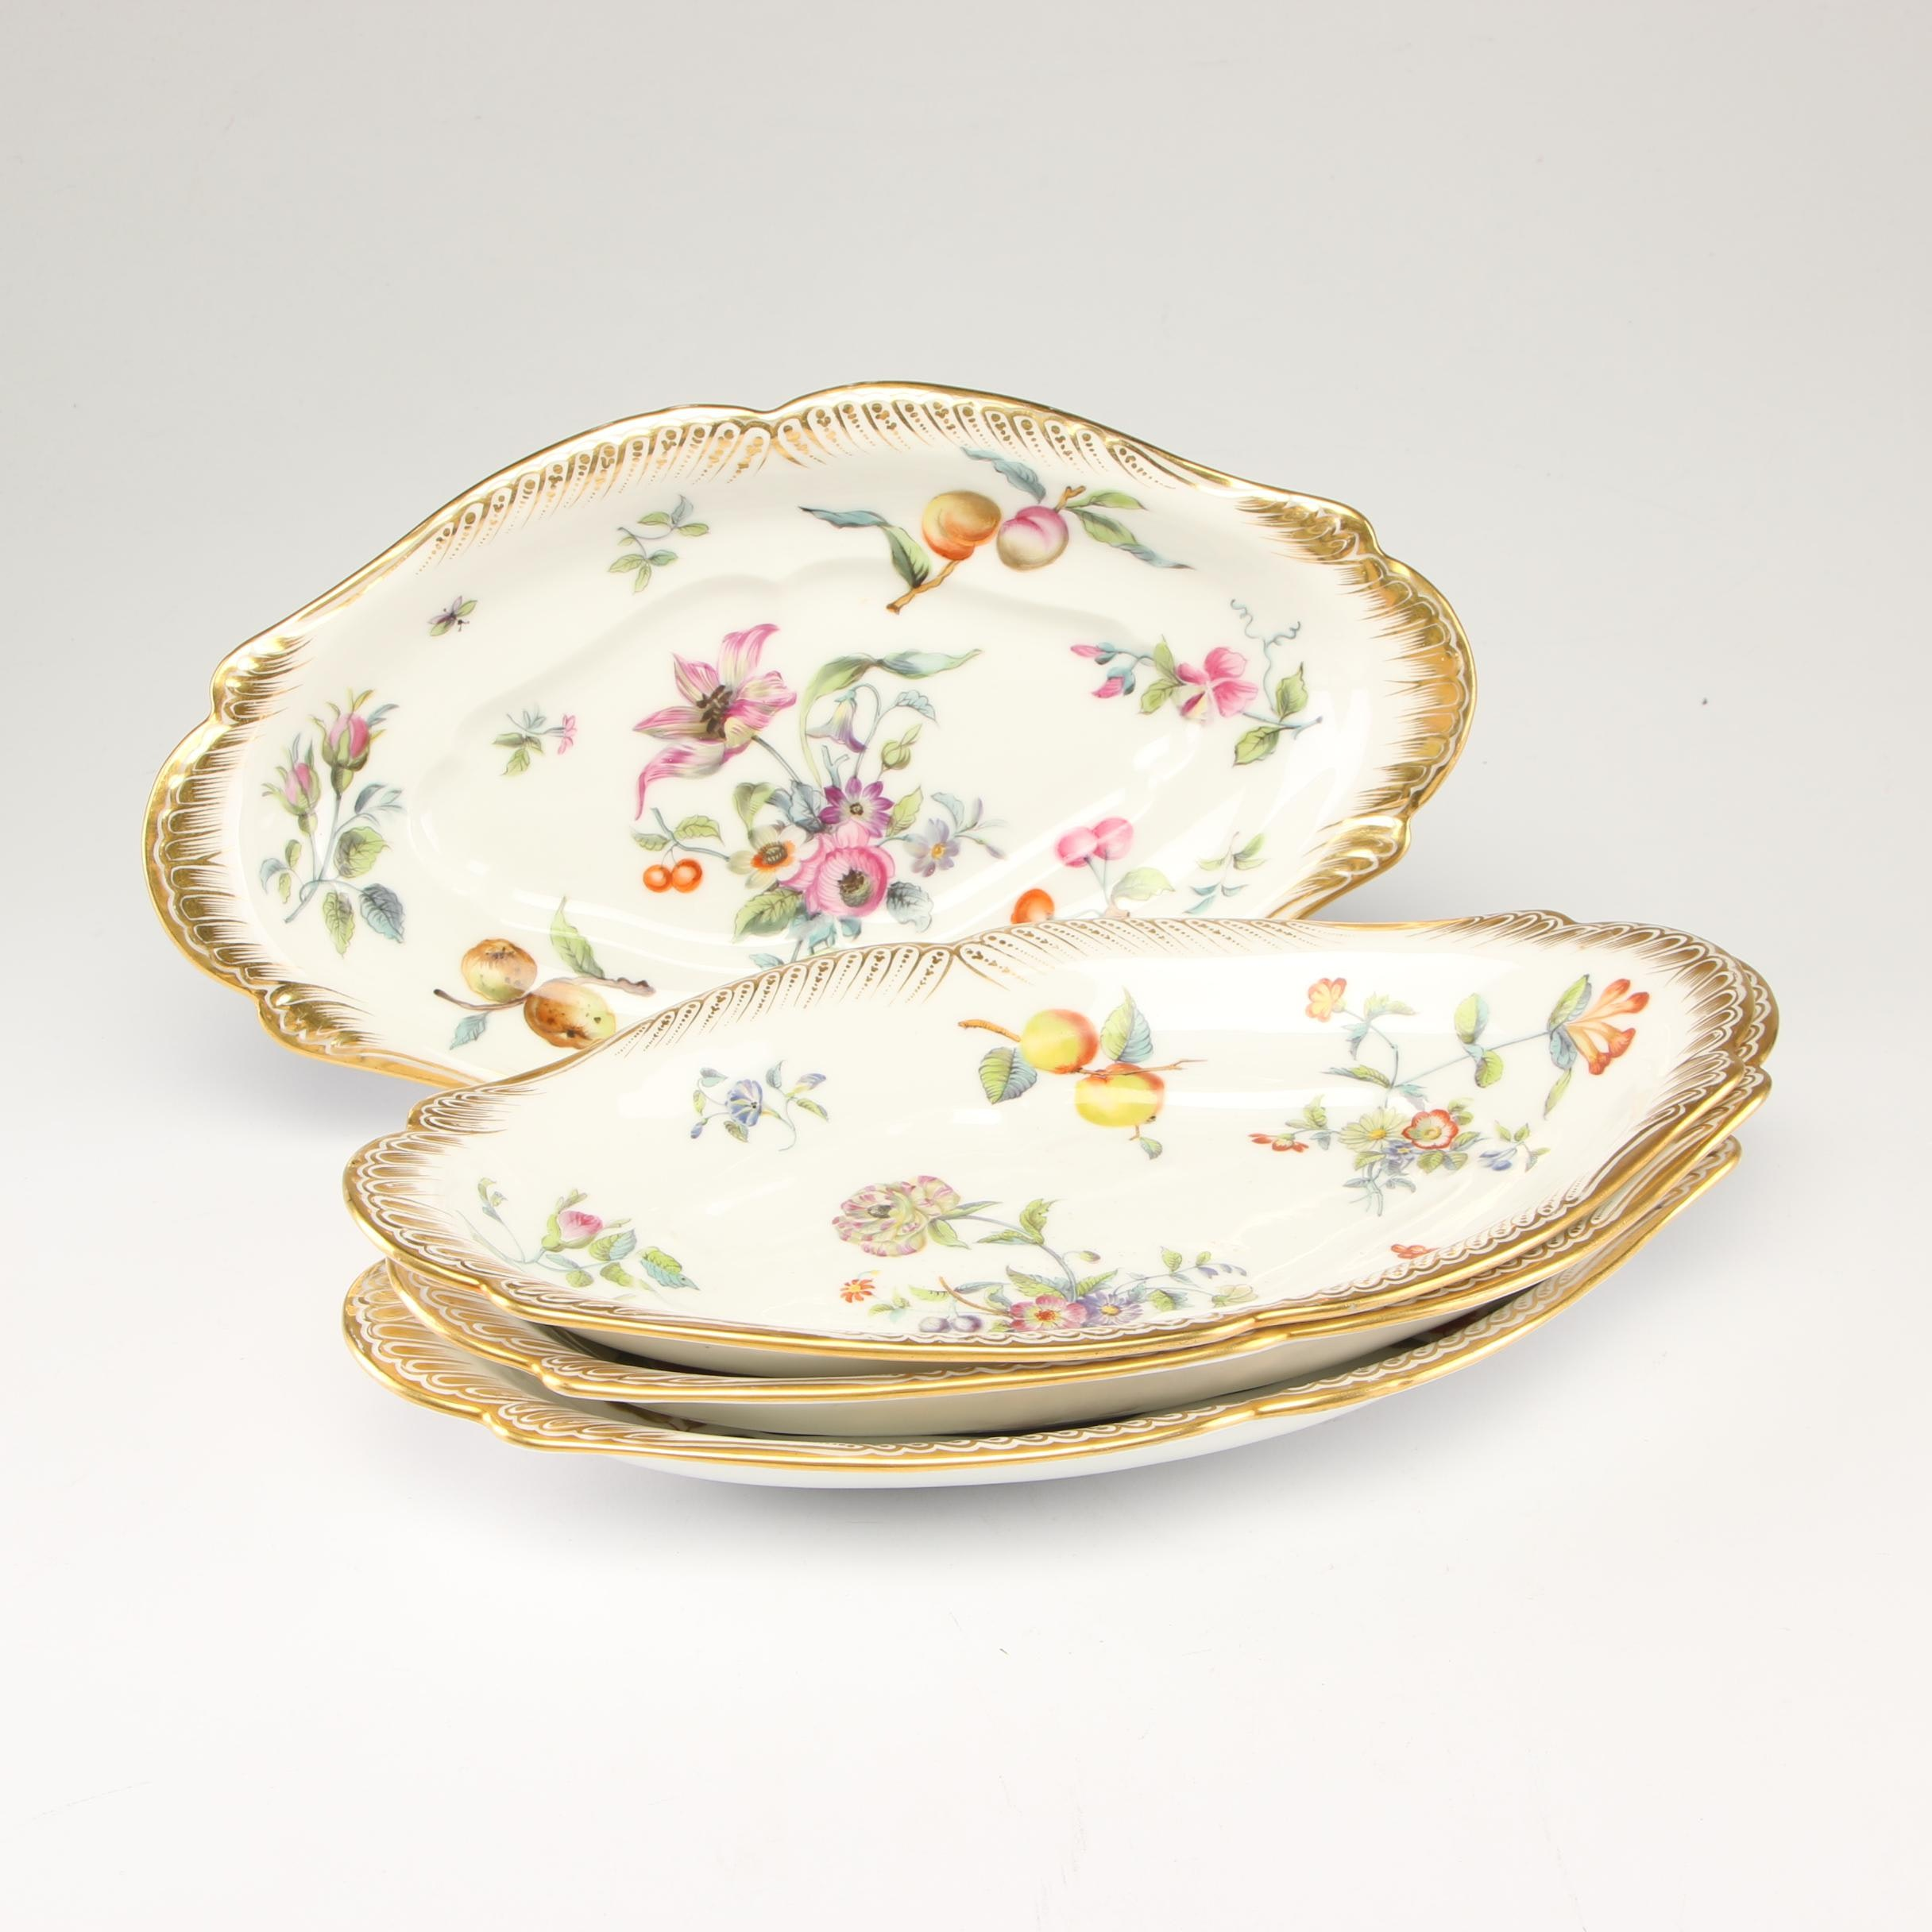 French Porcelain Ravier Serving Dishes with Floral Motif, Late 19th Century